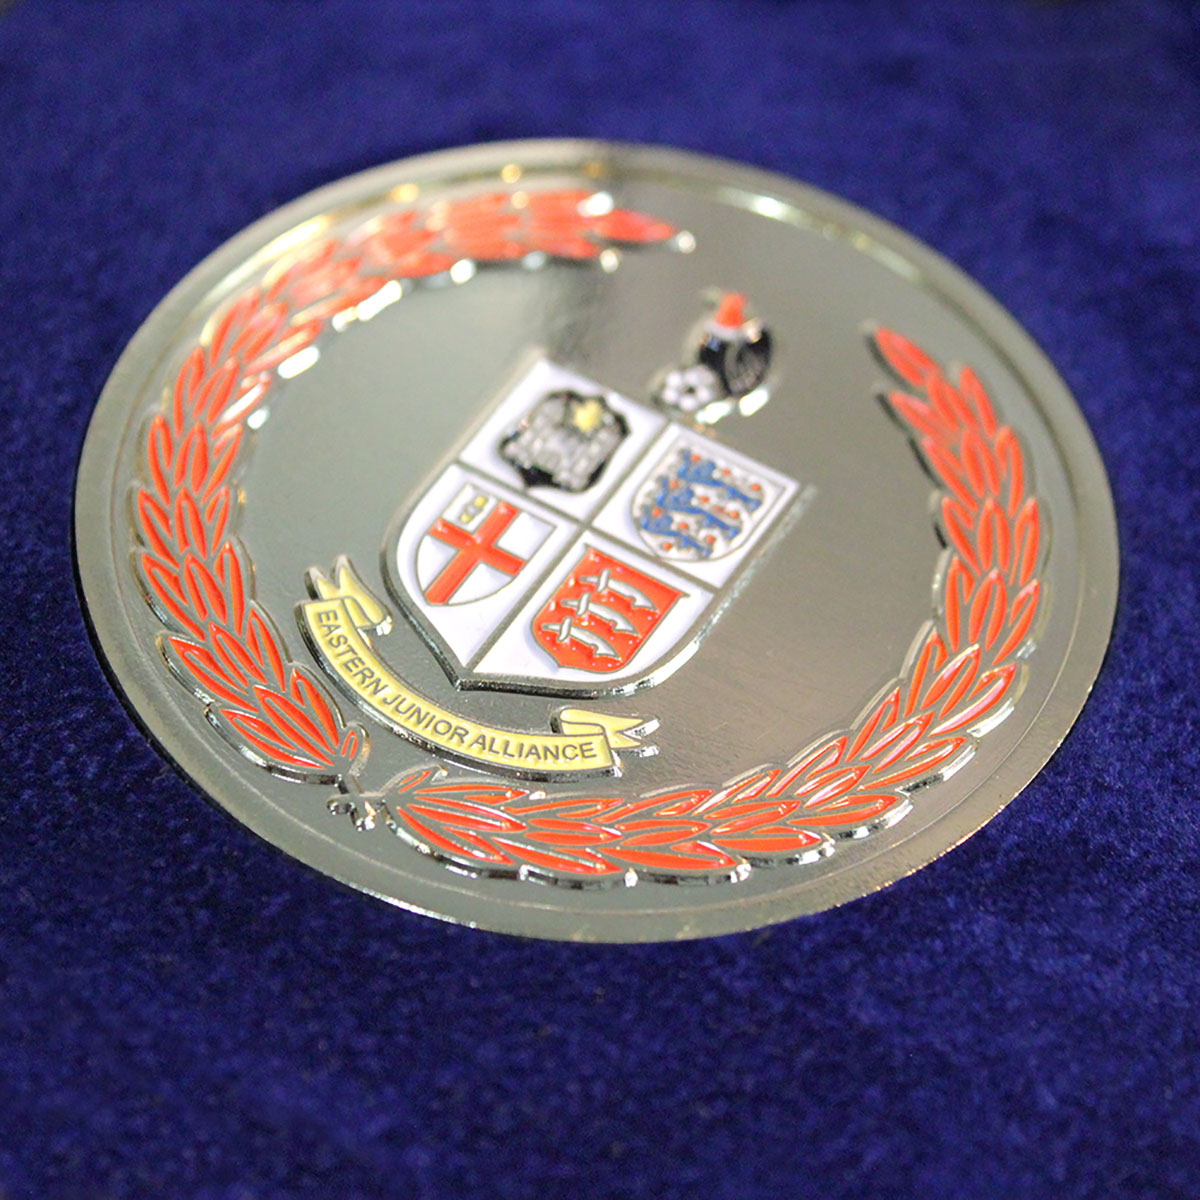 The silver enamelled Eastern Junior Alliance Football League Commemorative Medal produced by Medals UK World Cup Blog